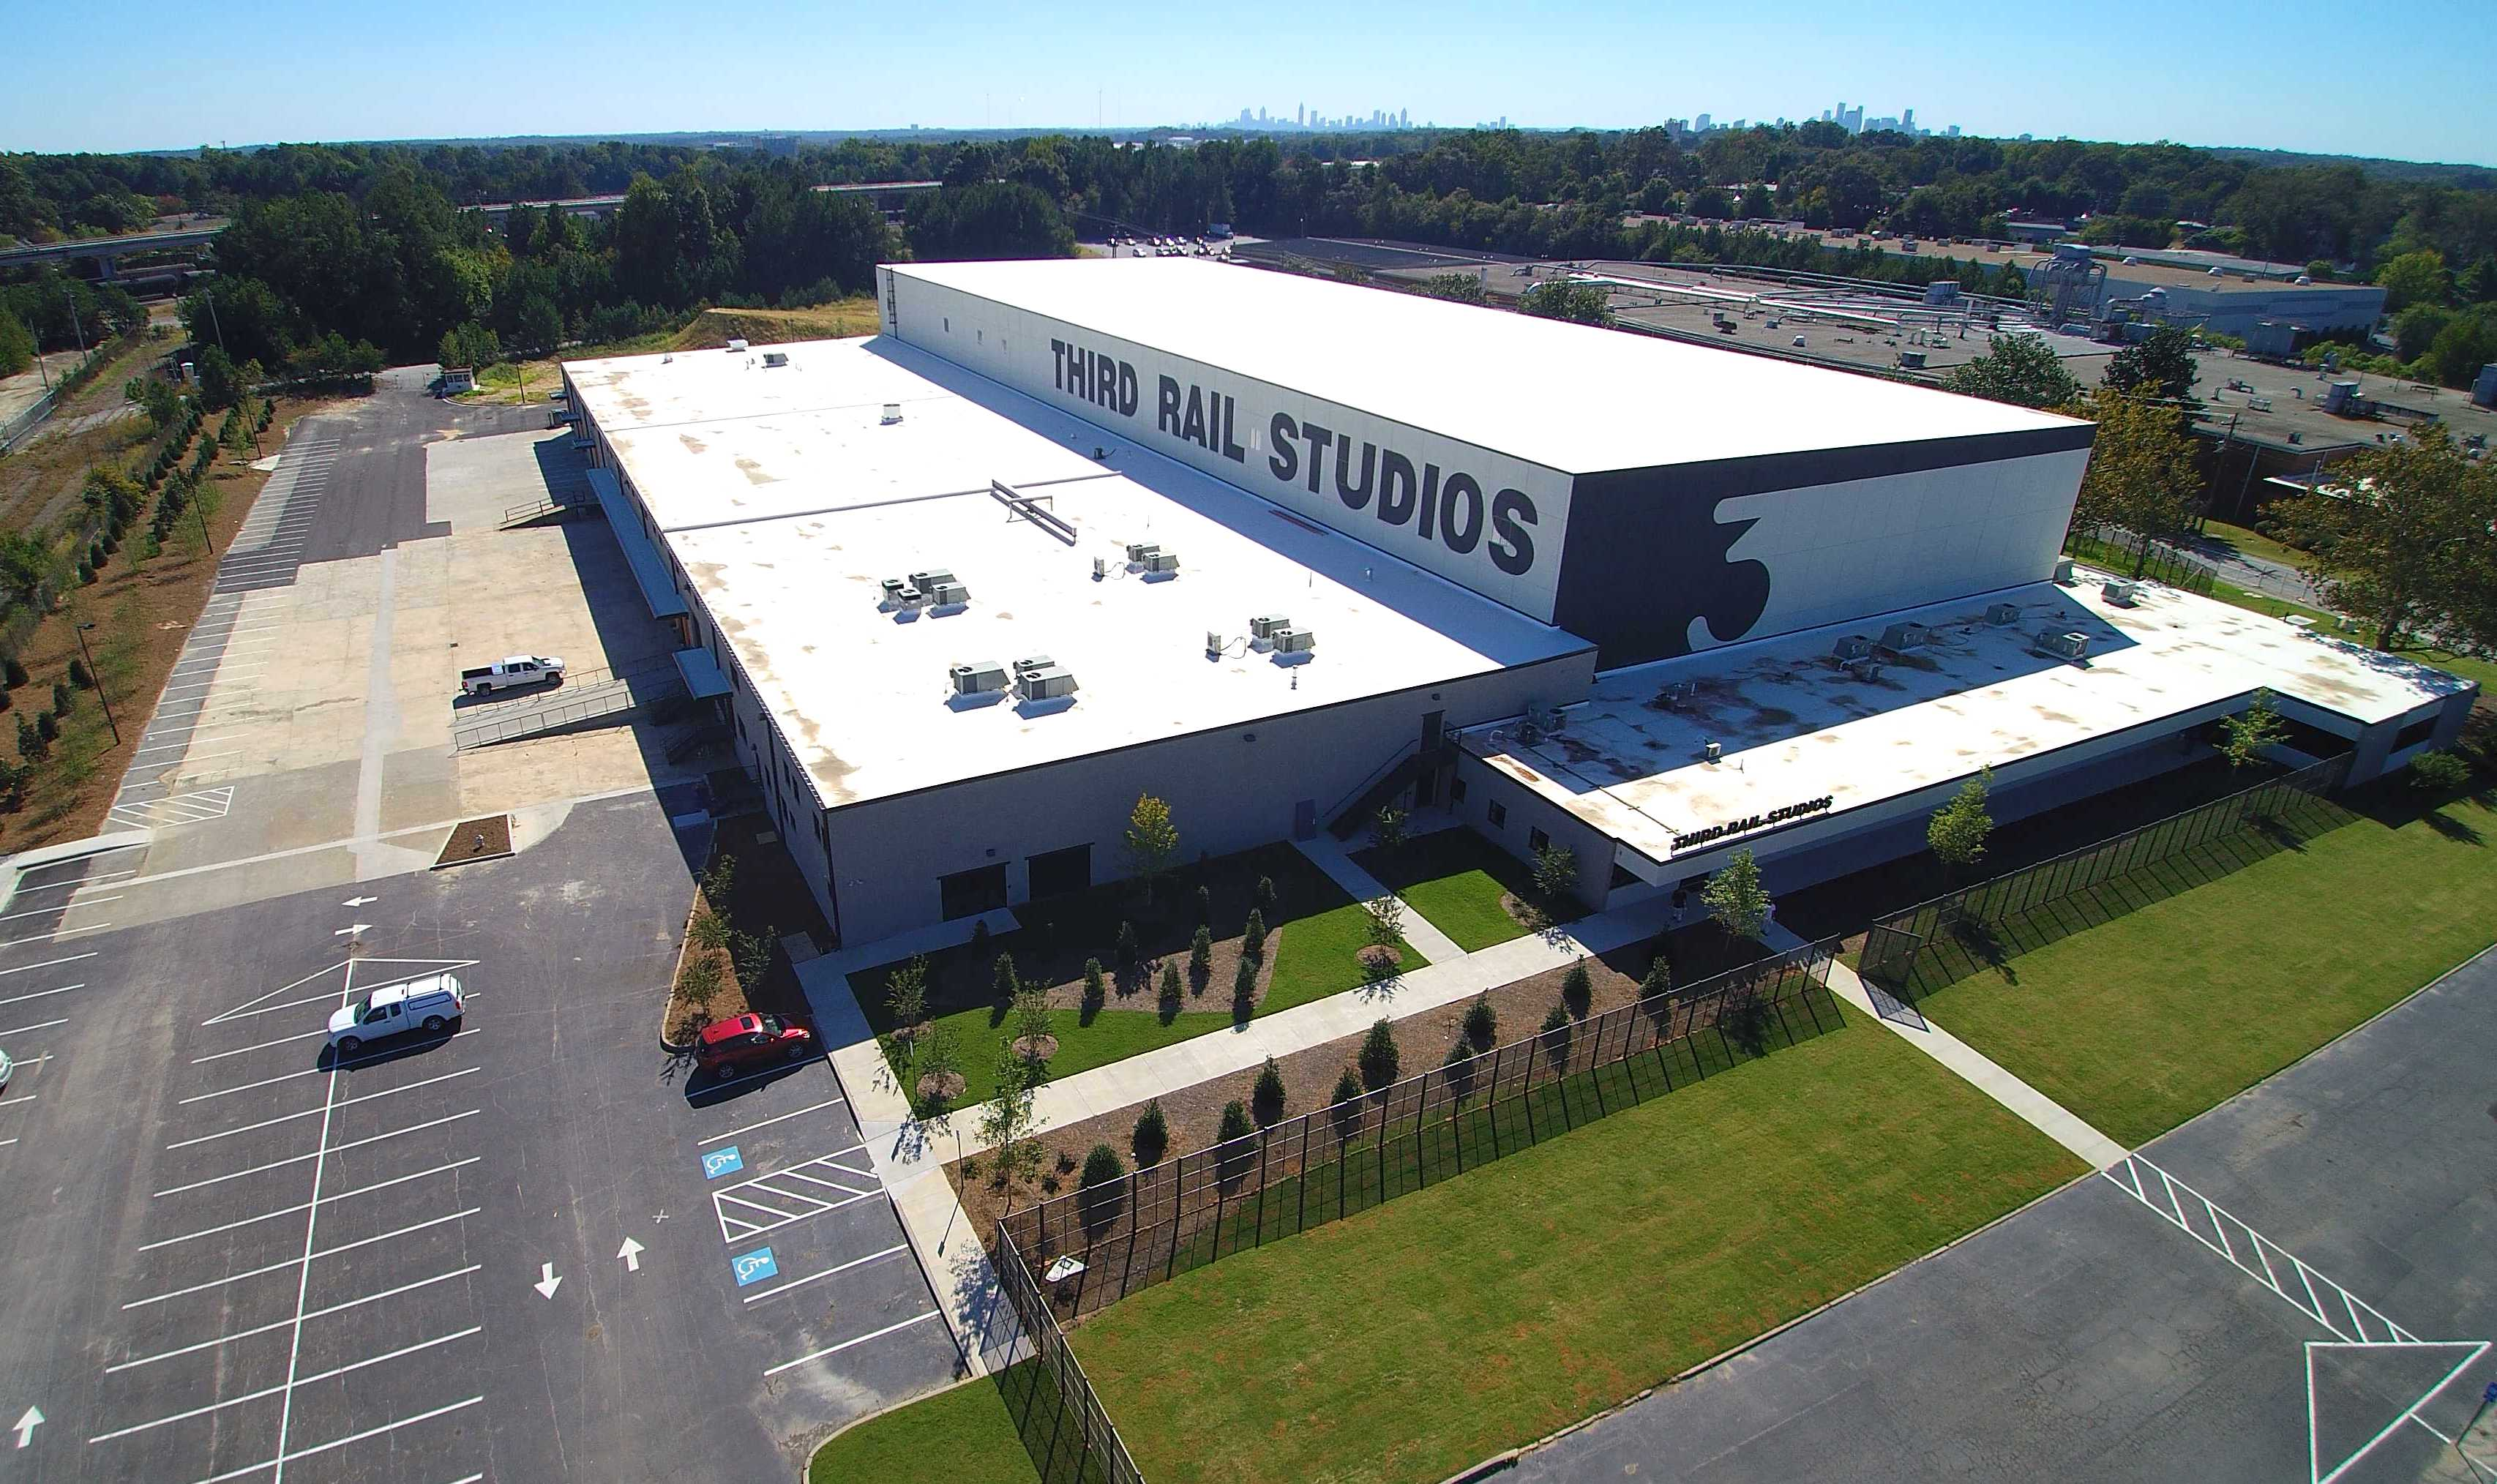 Third Rail Movie Studios